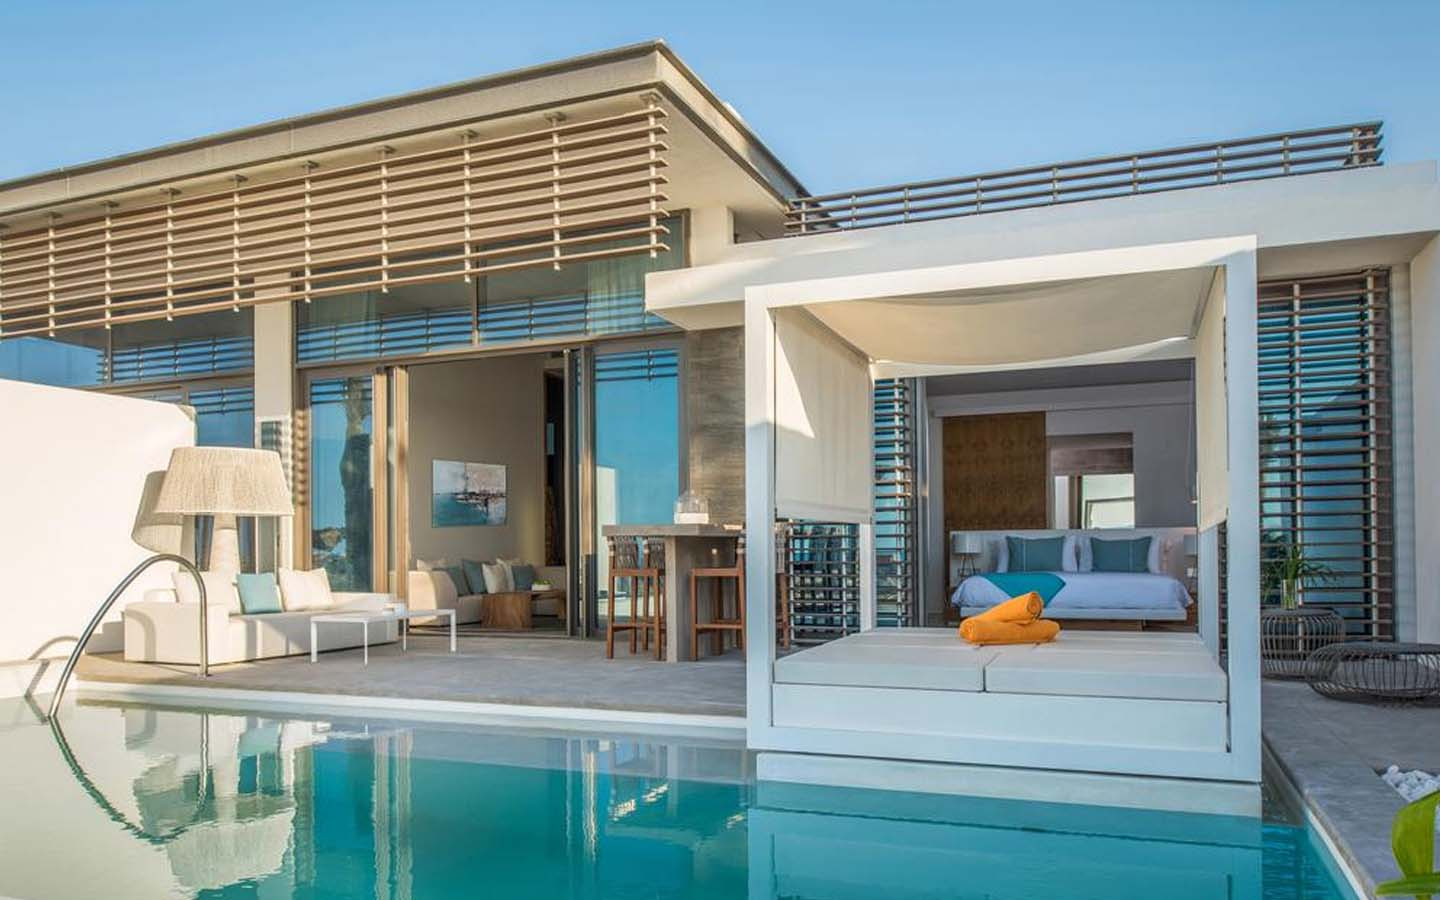 Nikki beach villa with a private pool and over-the-water cabana